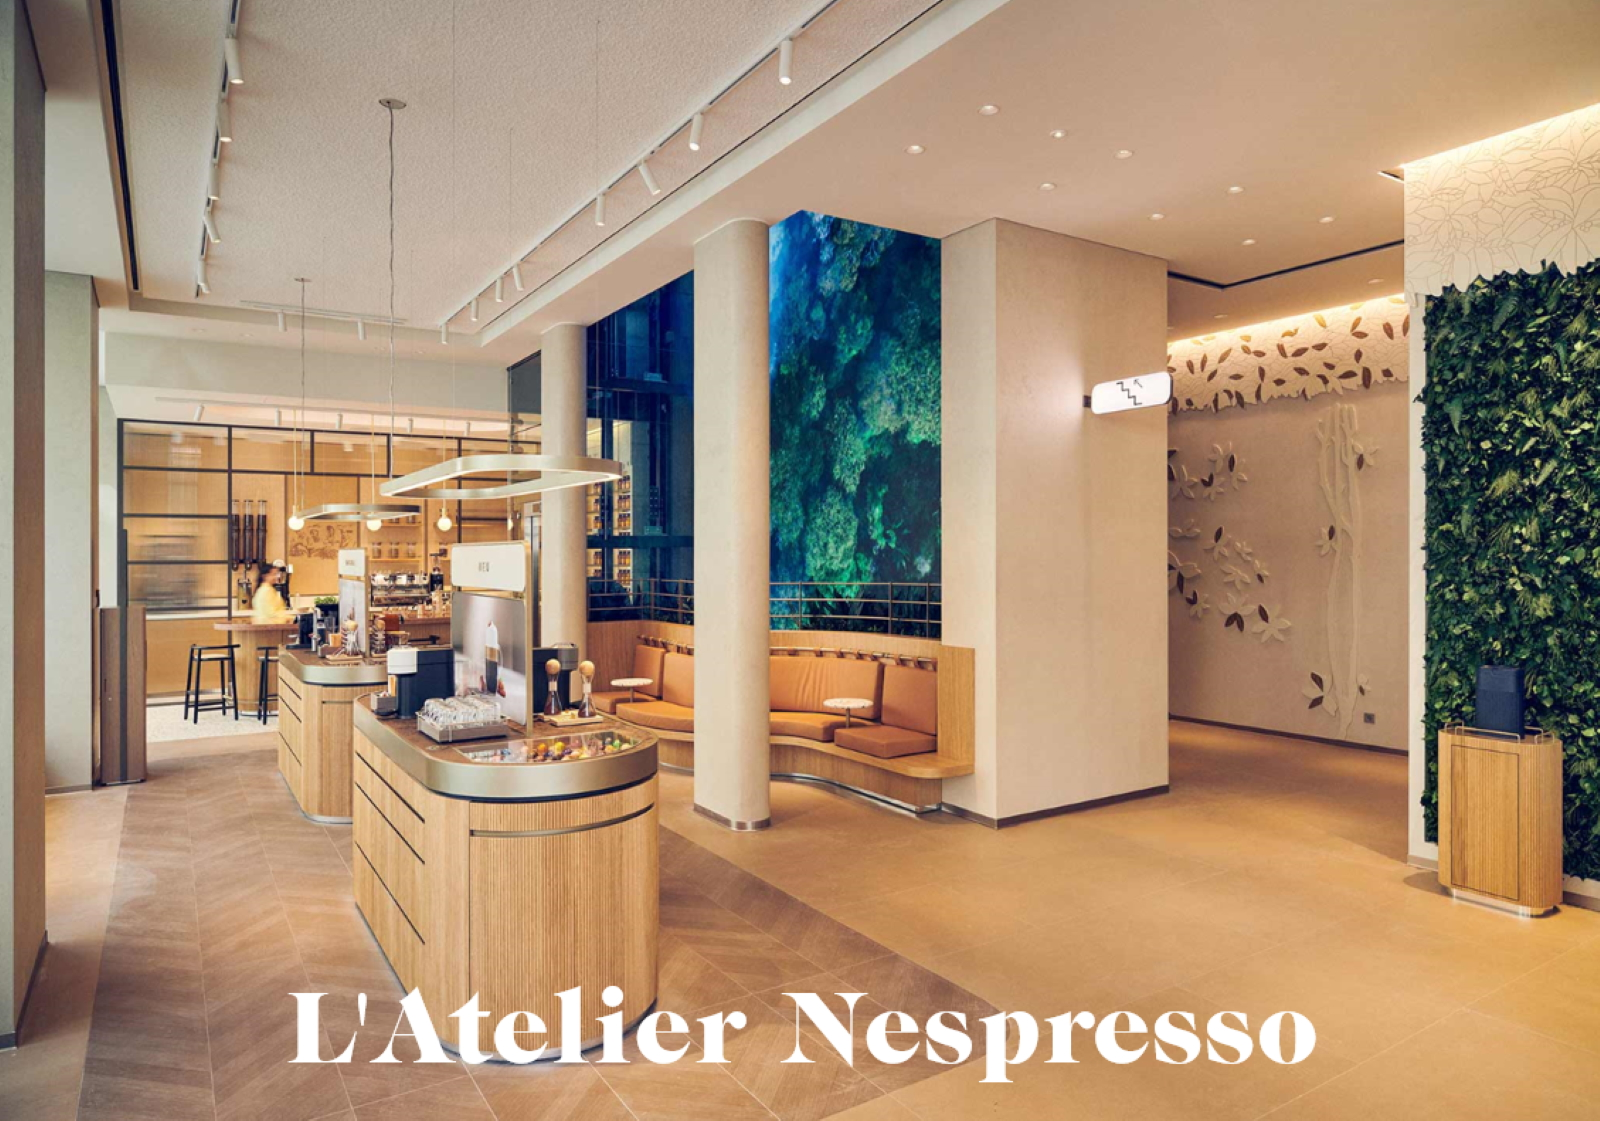 Nespresso atelier innovation tour missions mmm 0